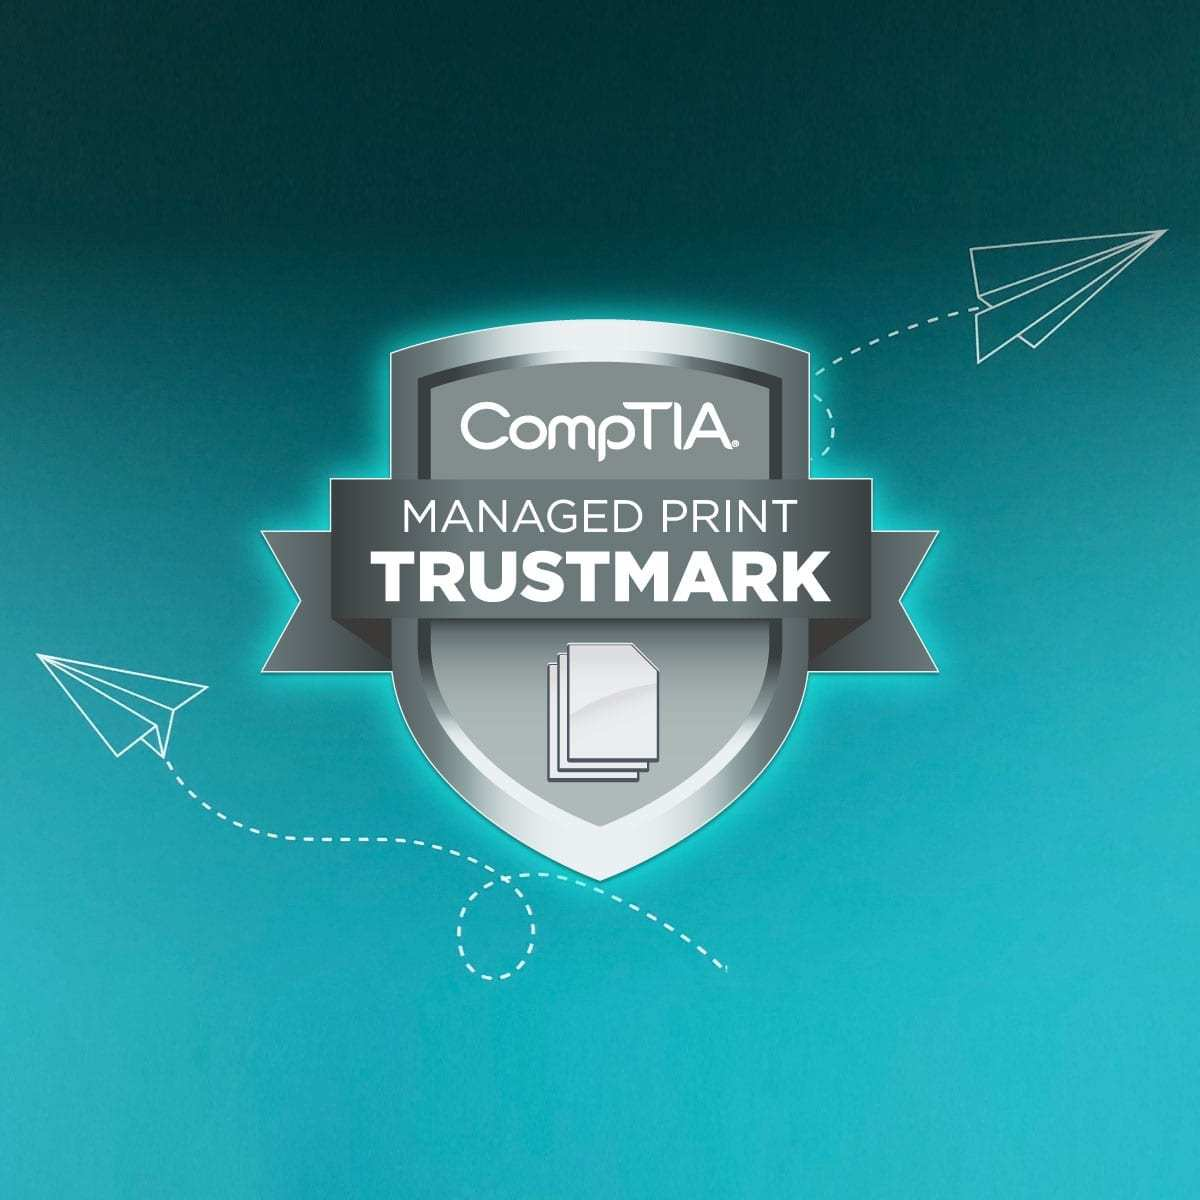 DMC Canotec awarded CompTIA Managed Print Services Trustmark